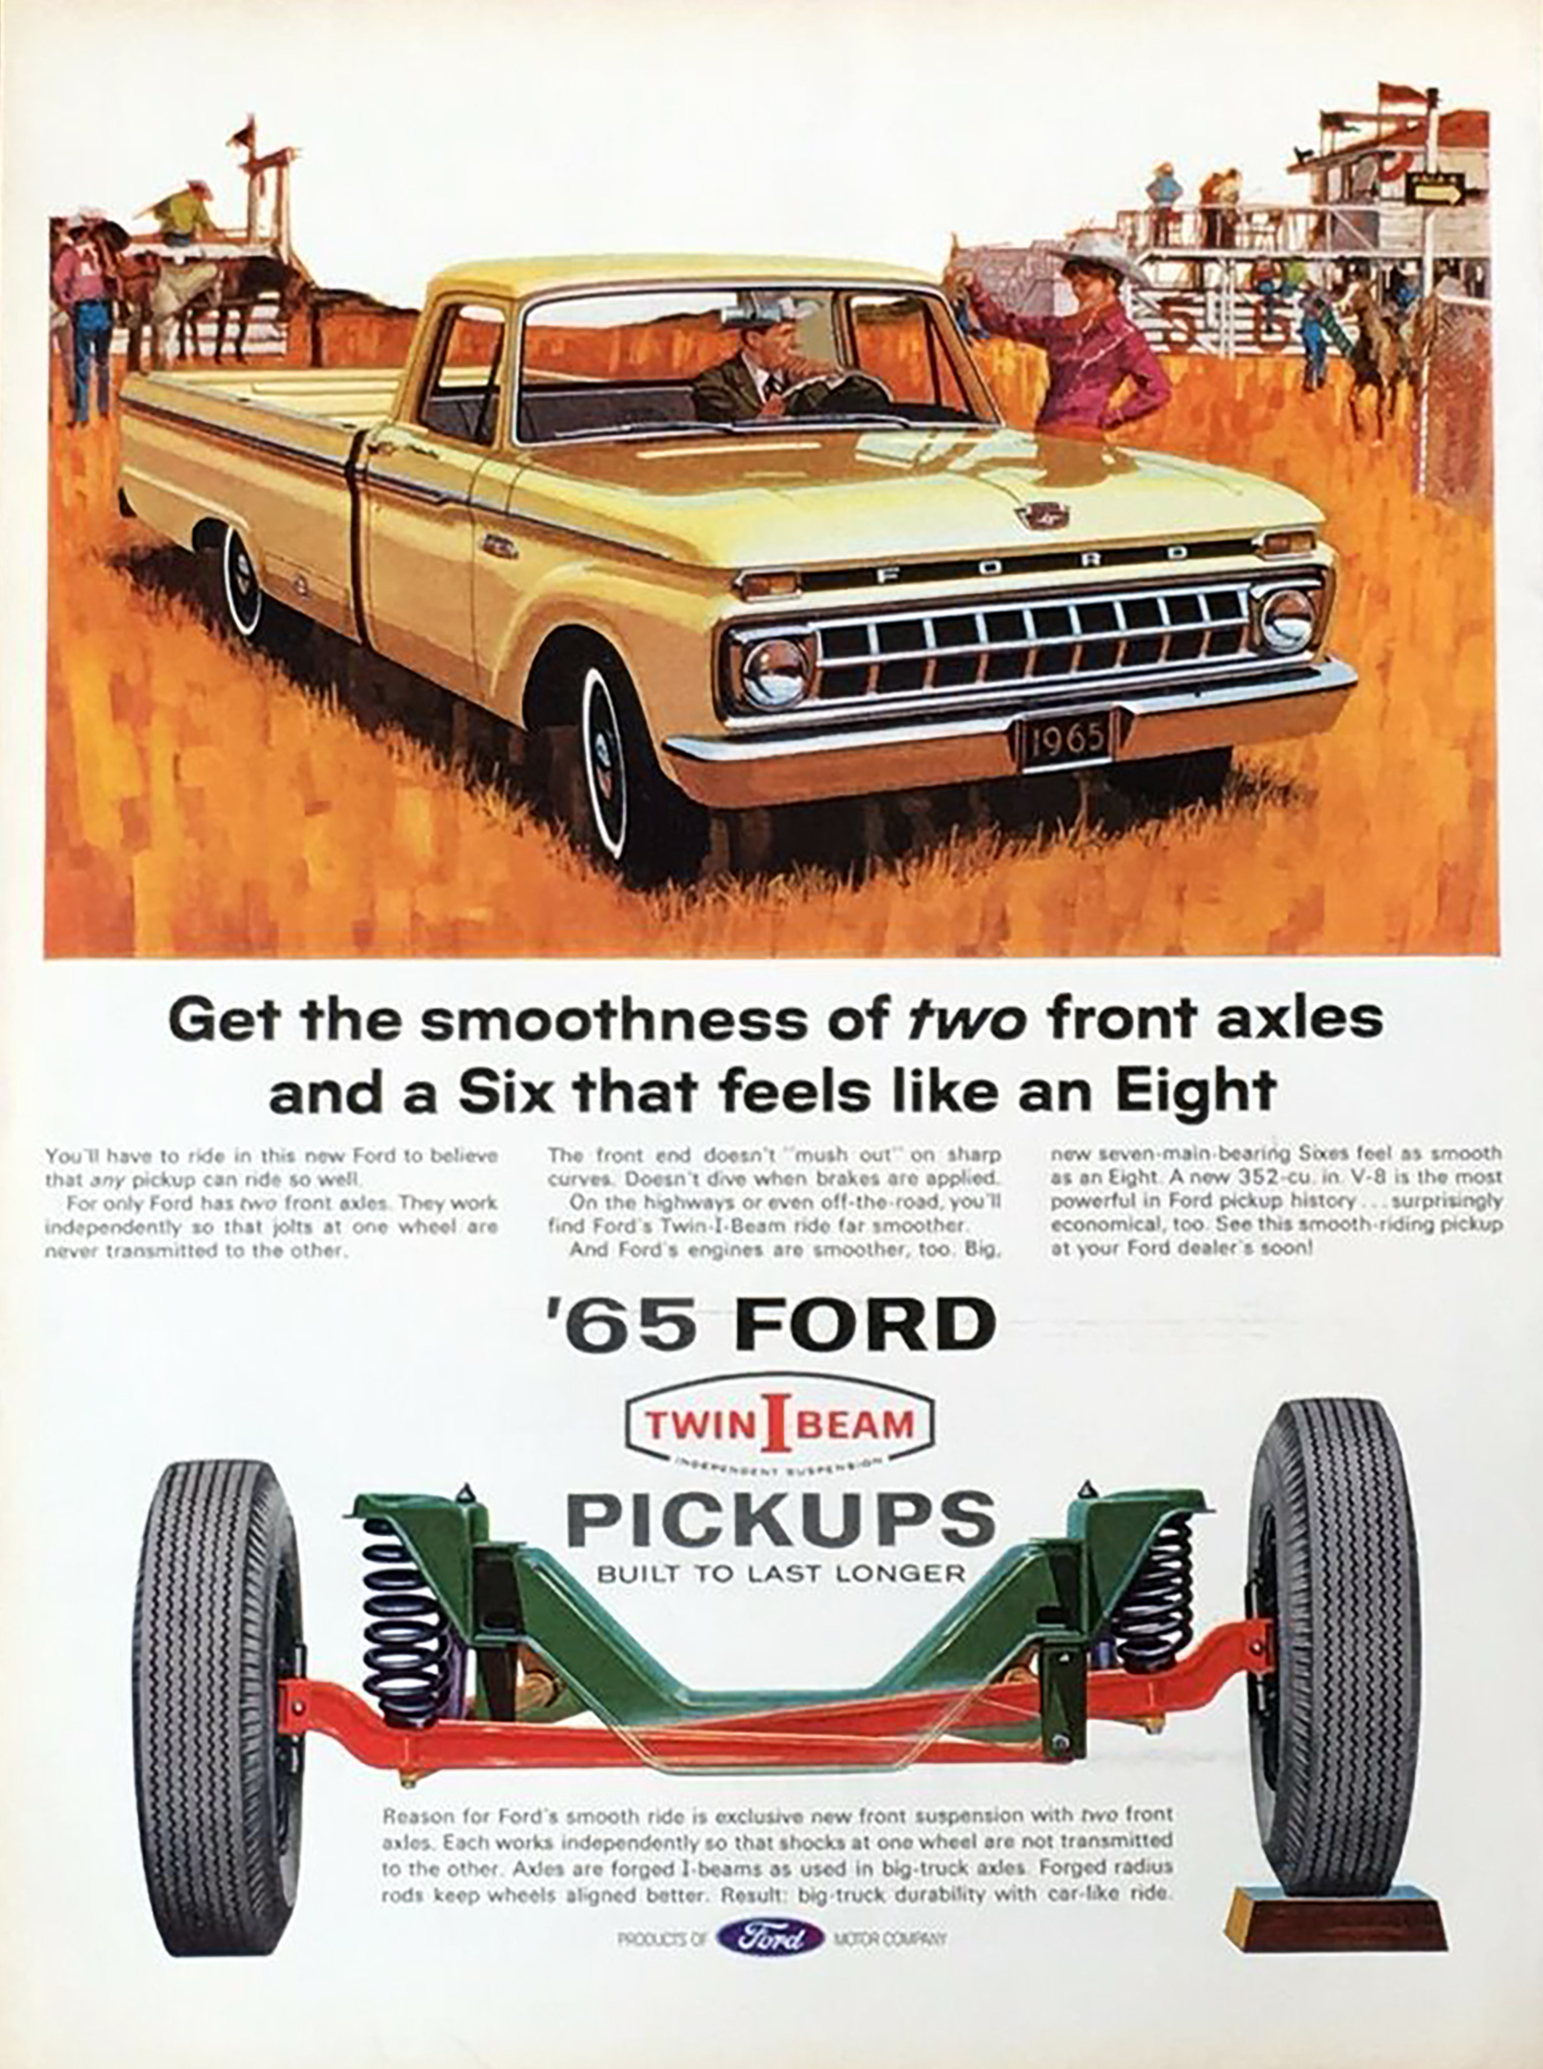 1965 Ford Pickup Cutaway, Twin I Beam